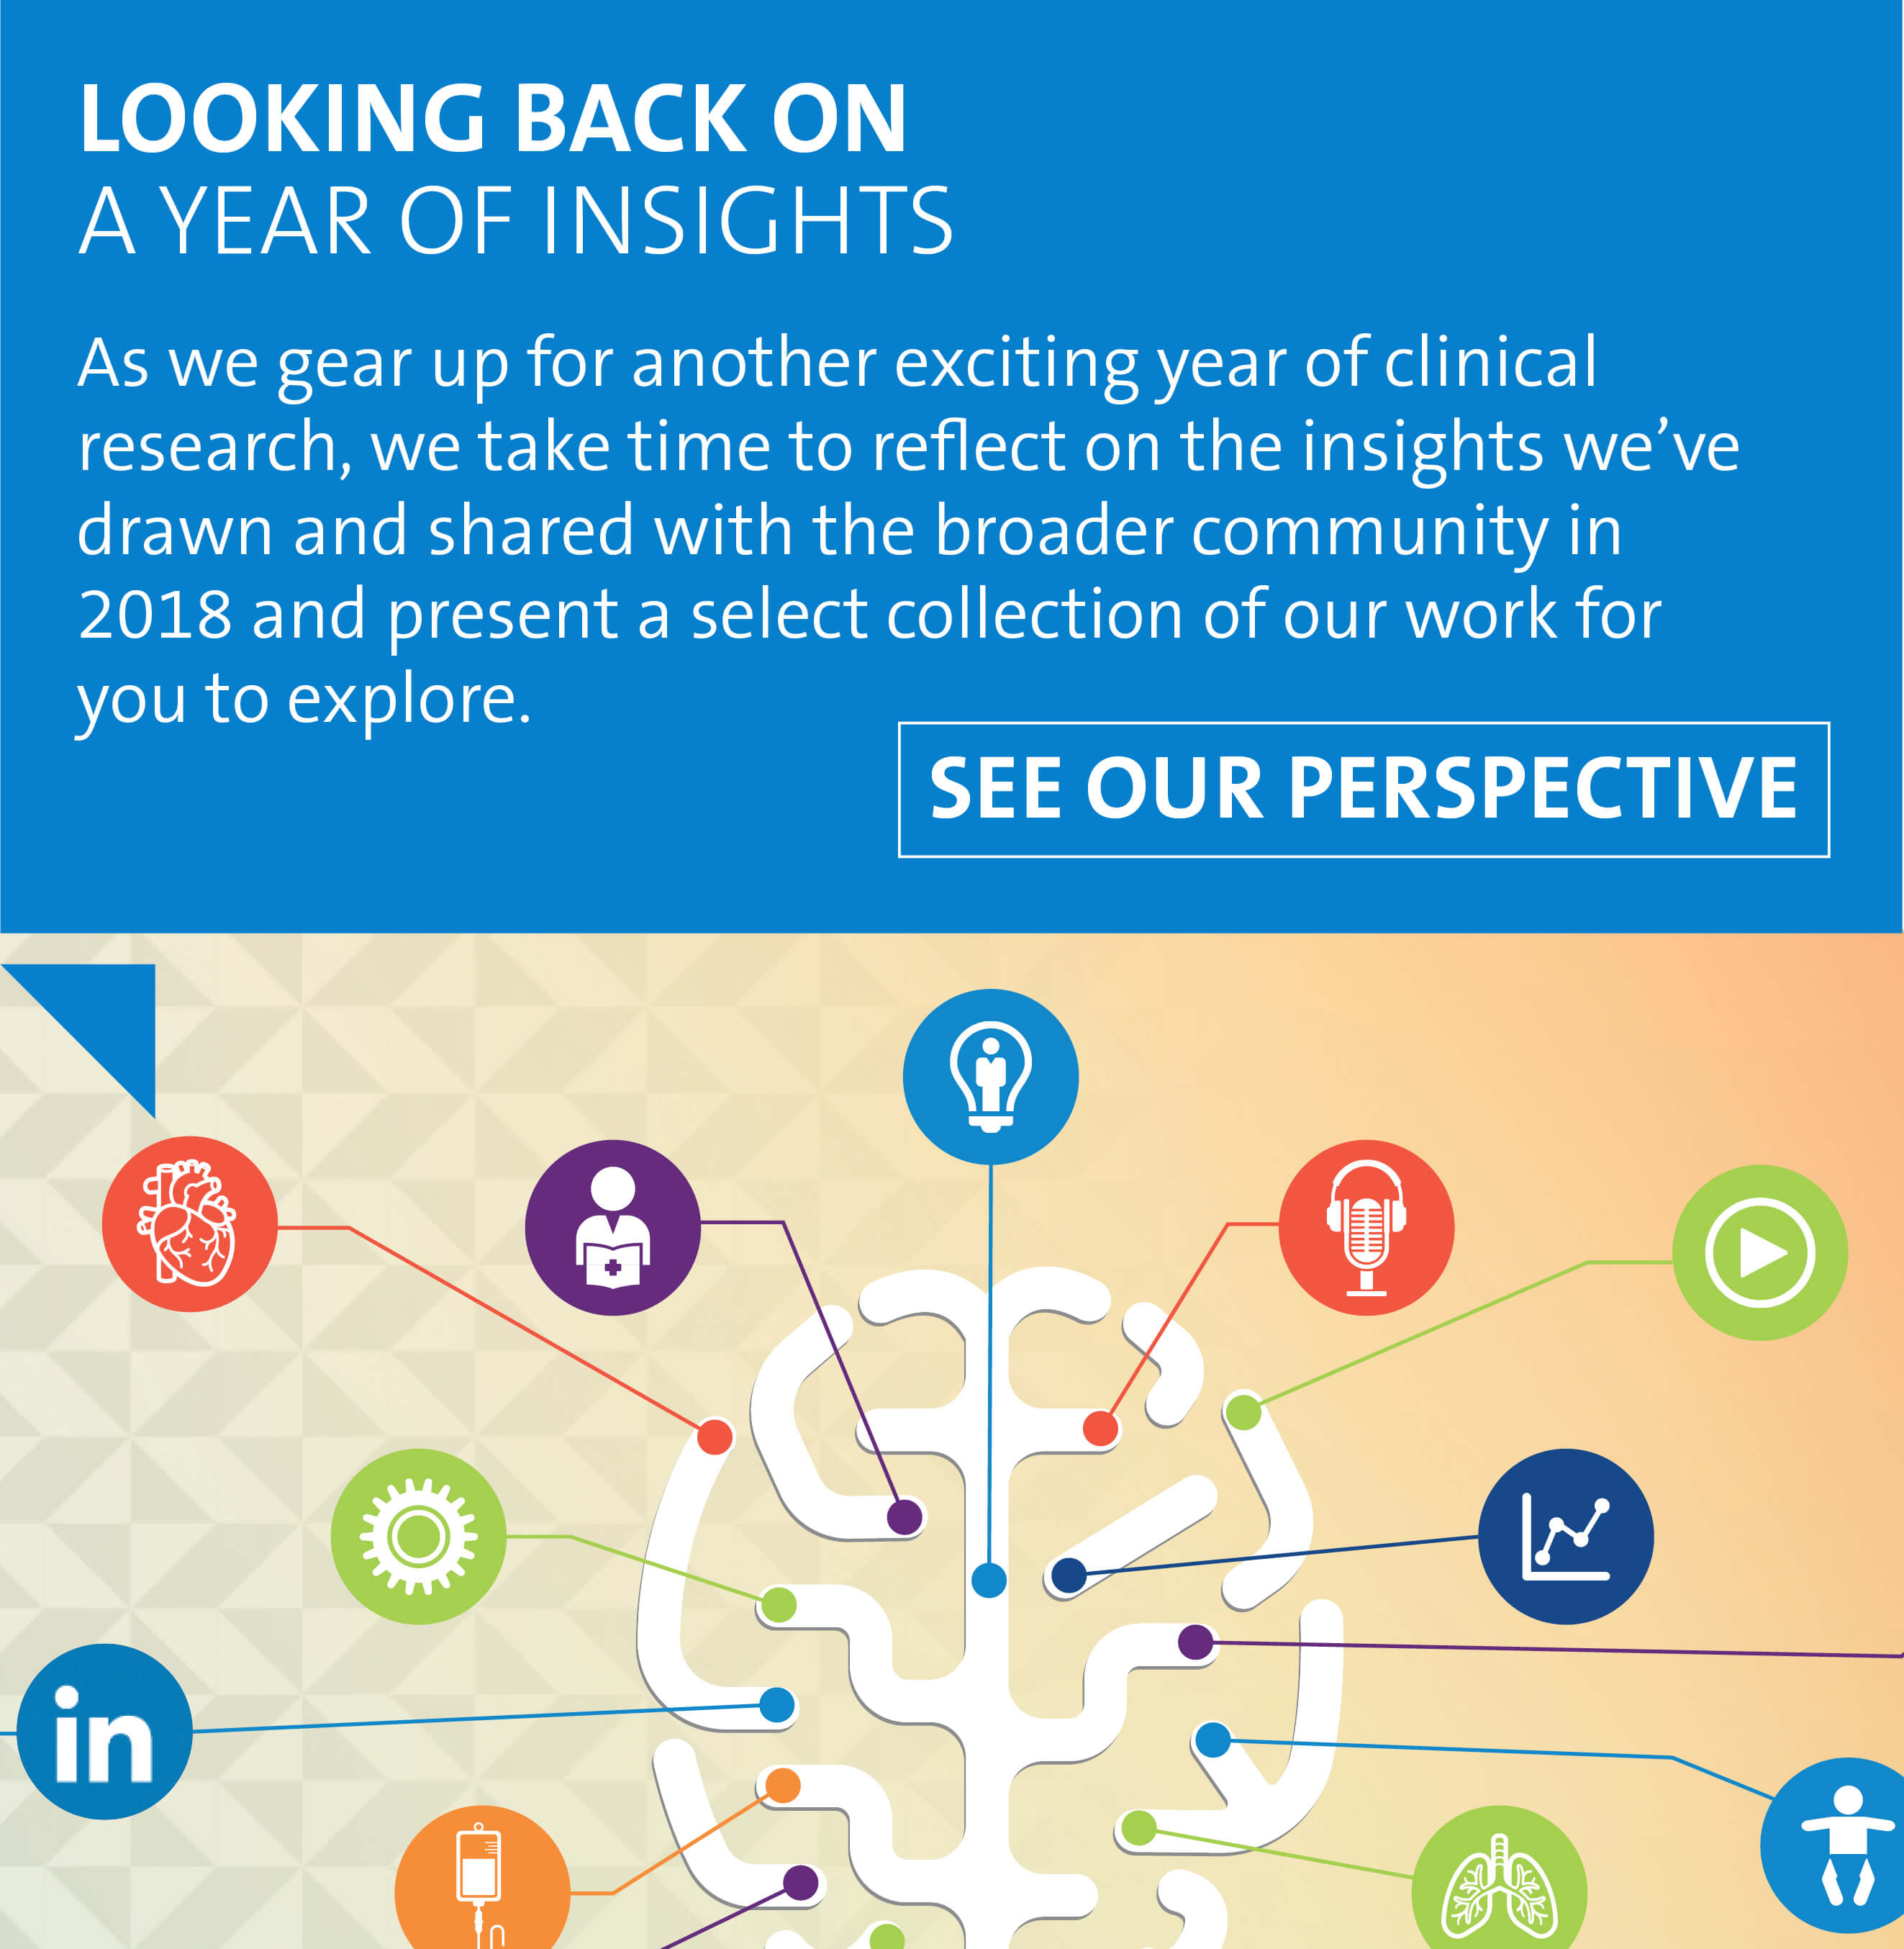 Look back at a year of insights with us. As we gear up for another exciting year of clinical research, we take time to reflect on the insights we've drawn and shared with the broader community in 2018 and present a select collection of our work for you to explore.